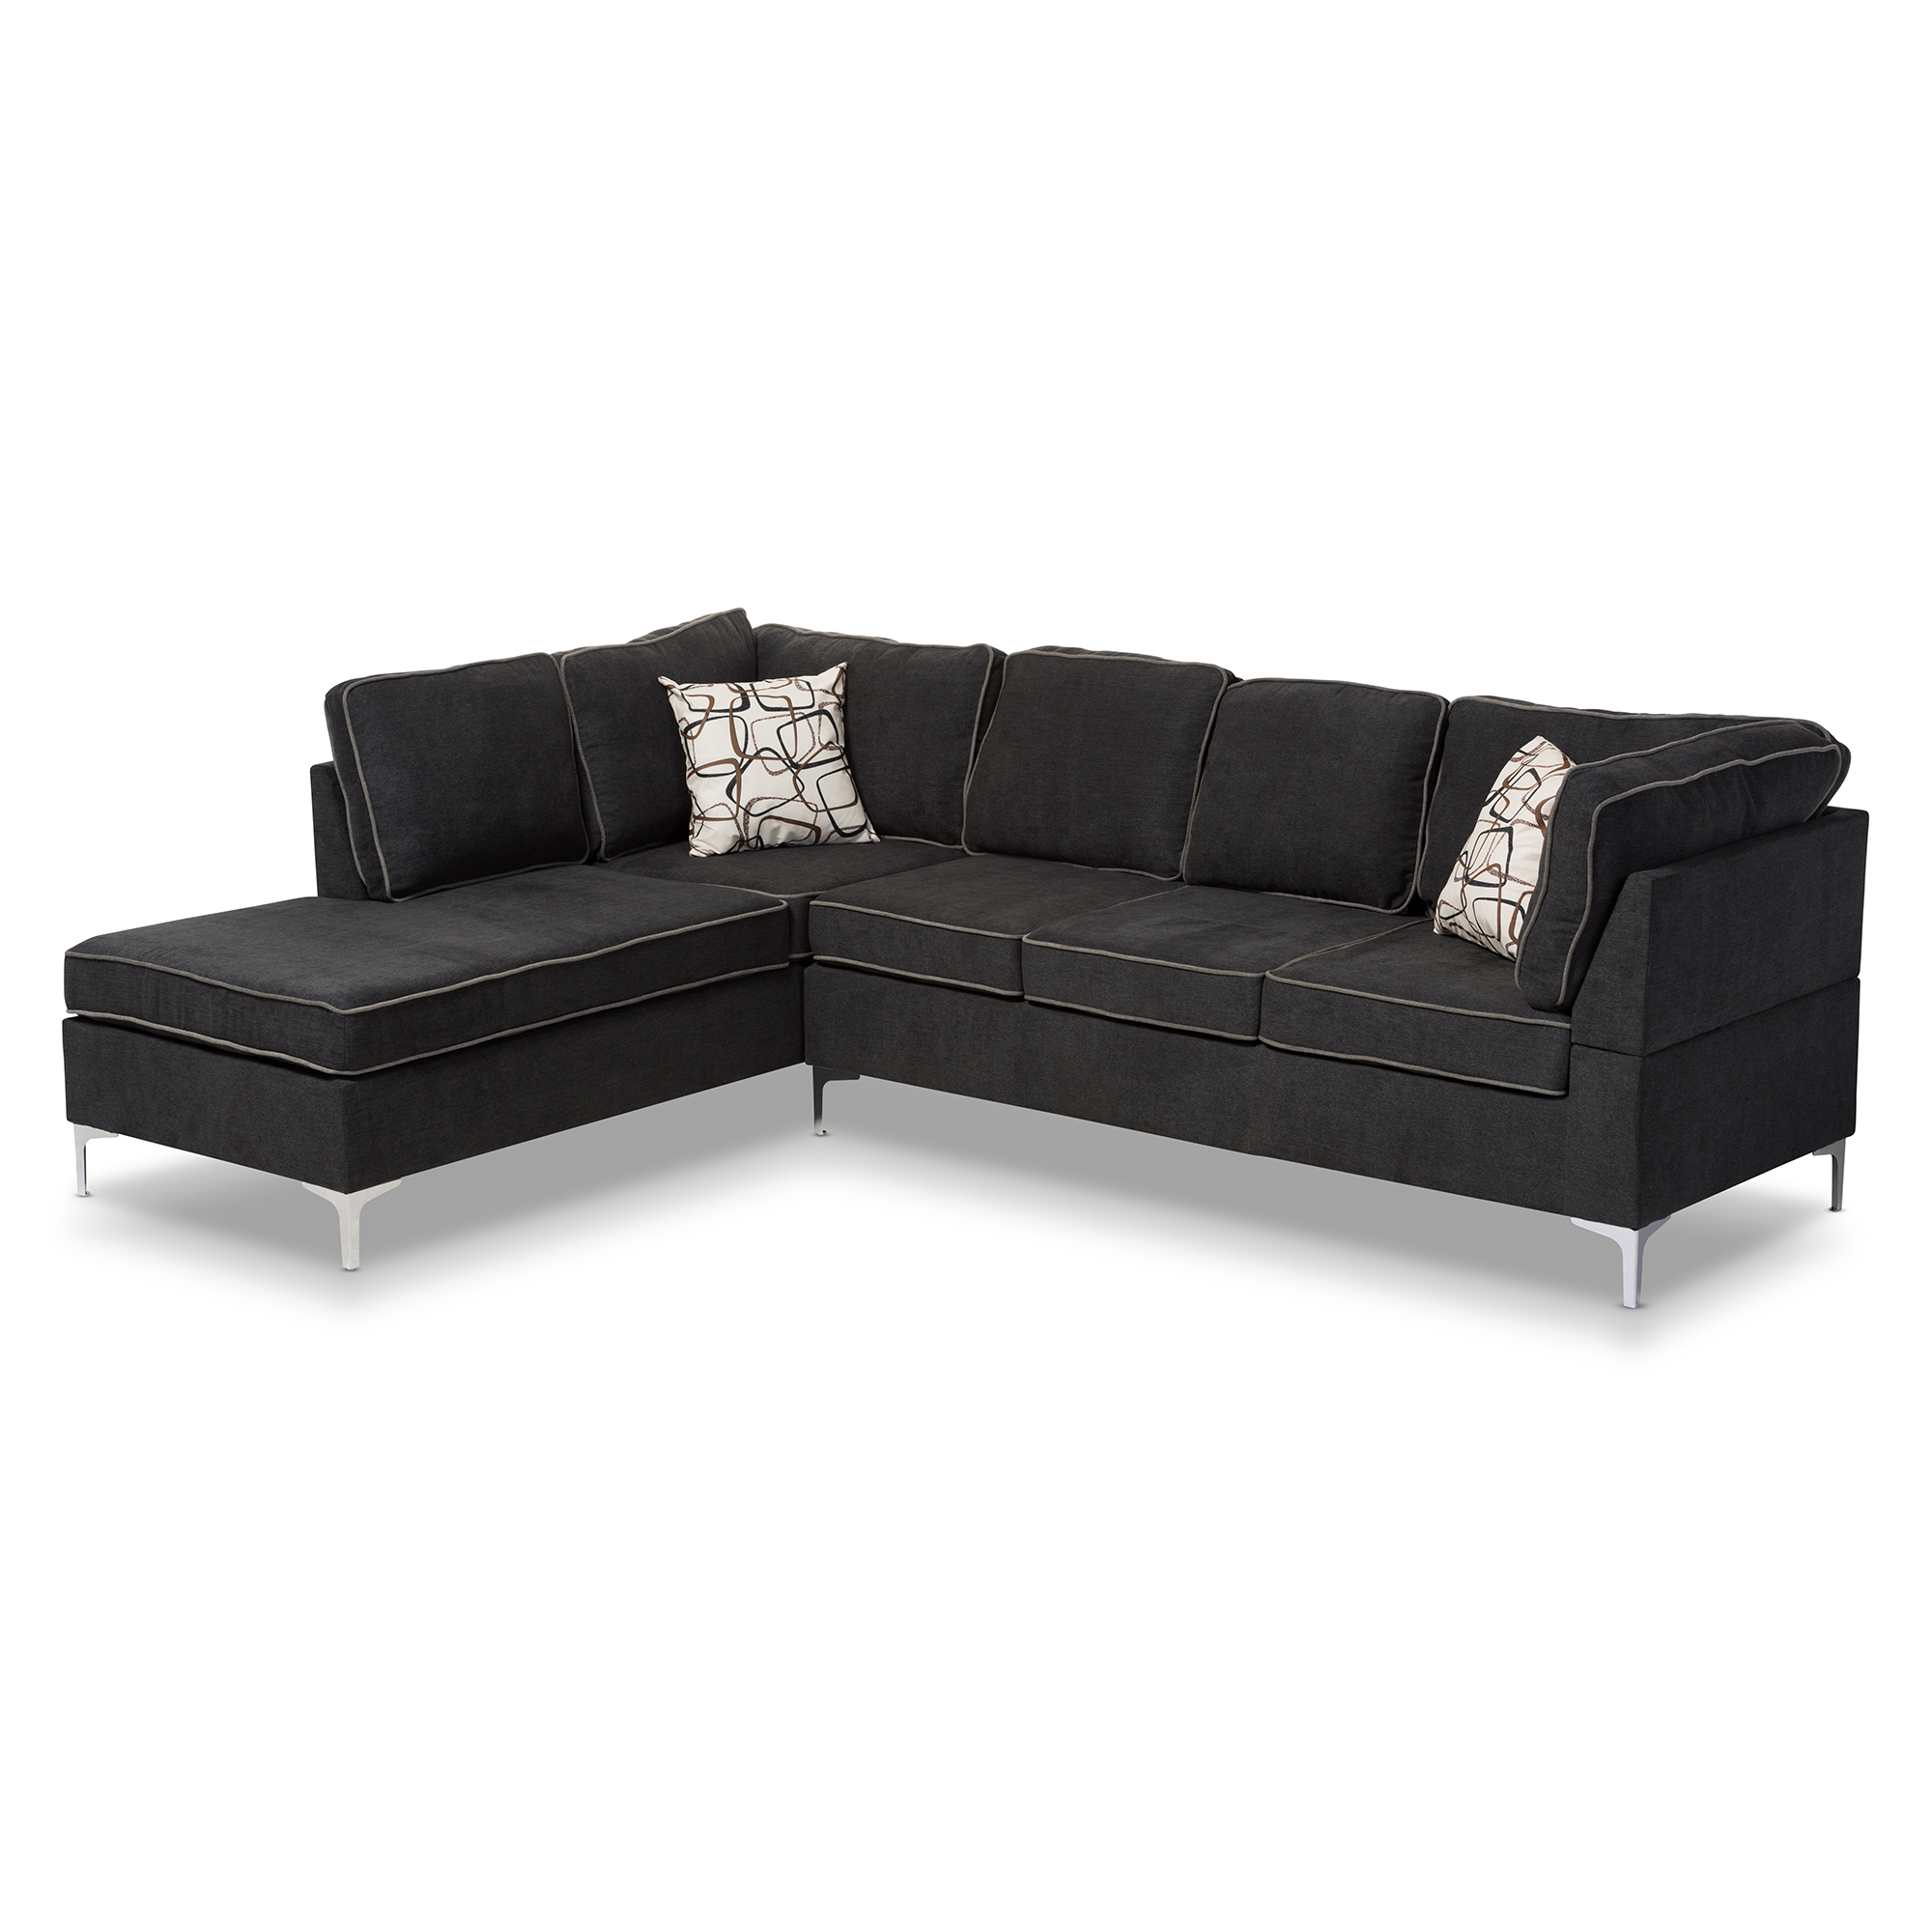 Baxton Studio Richie Modern And Contemporary Two-Tone Dark Grey And ...